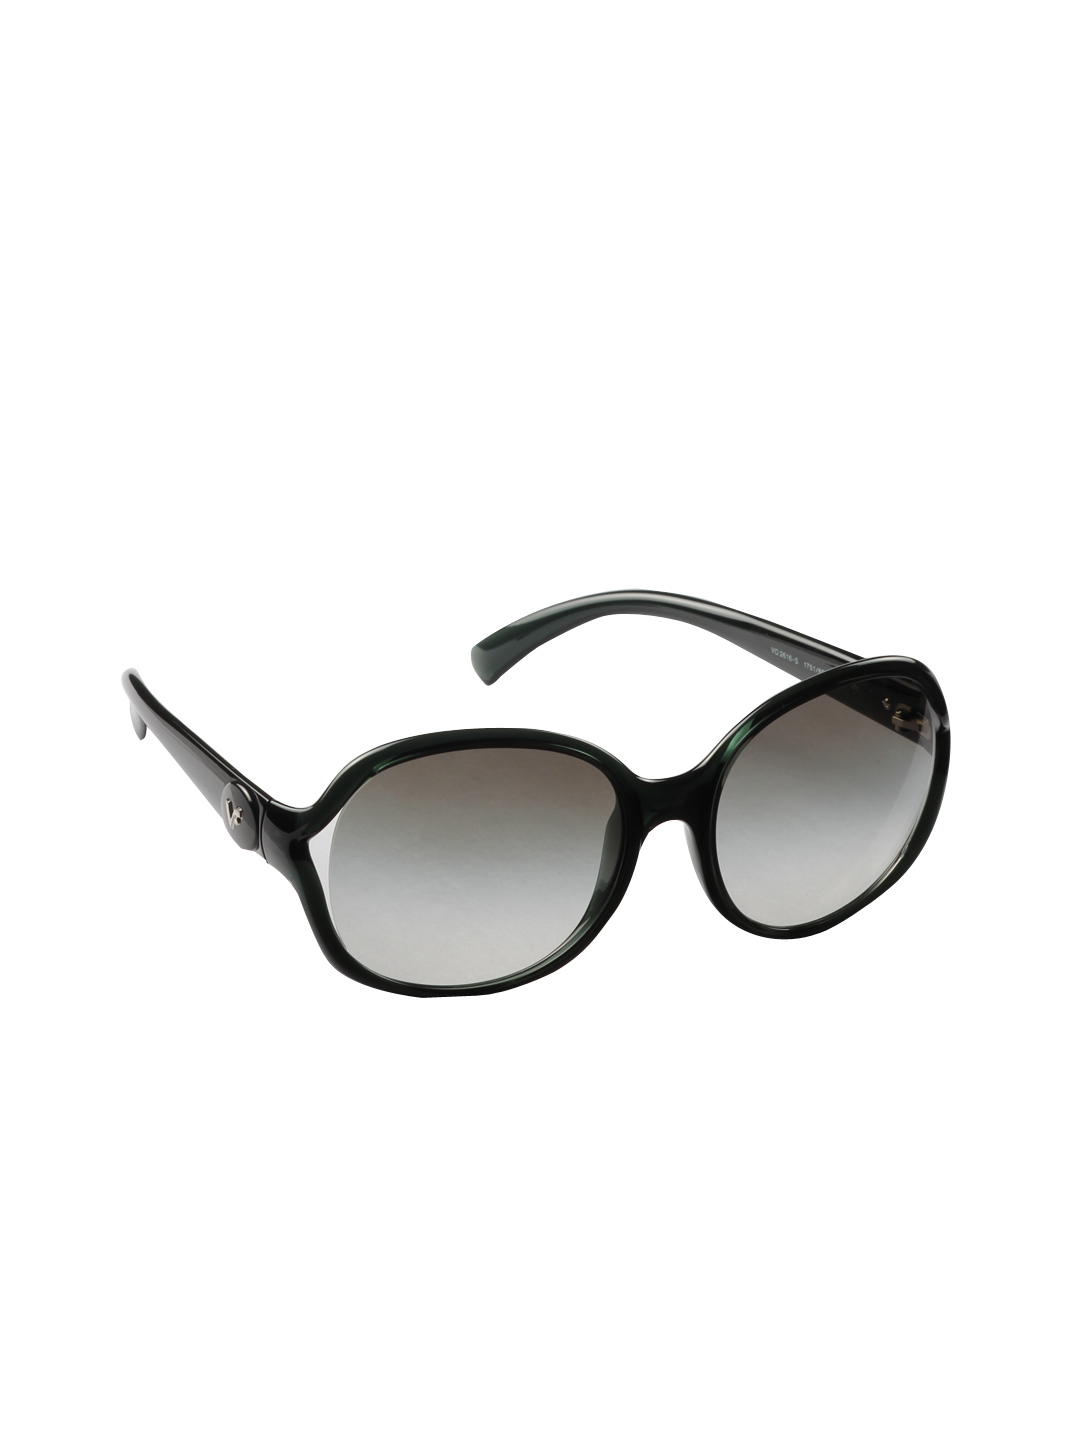 Vogue Women Black Sunglasses